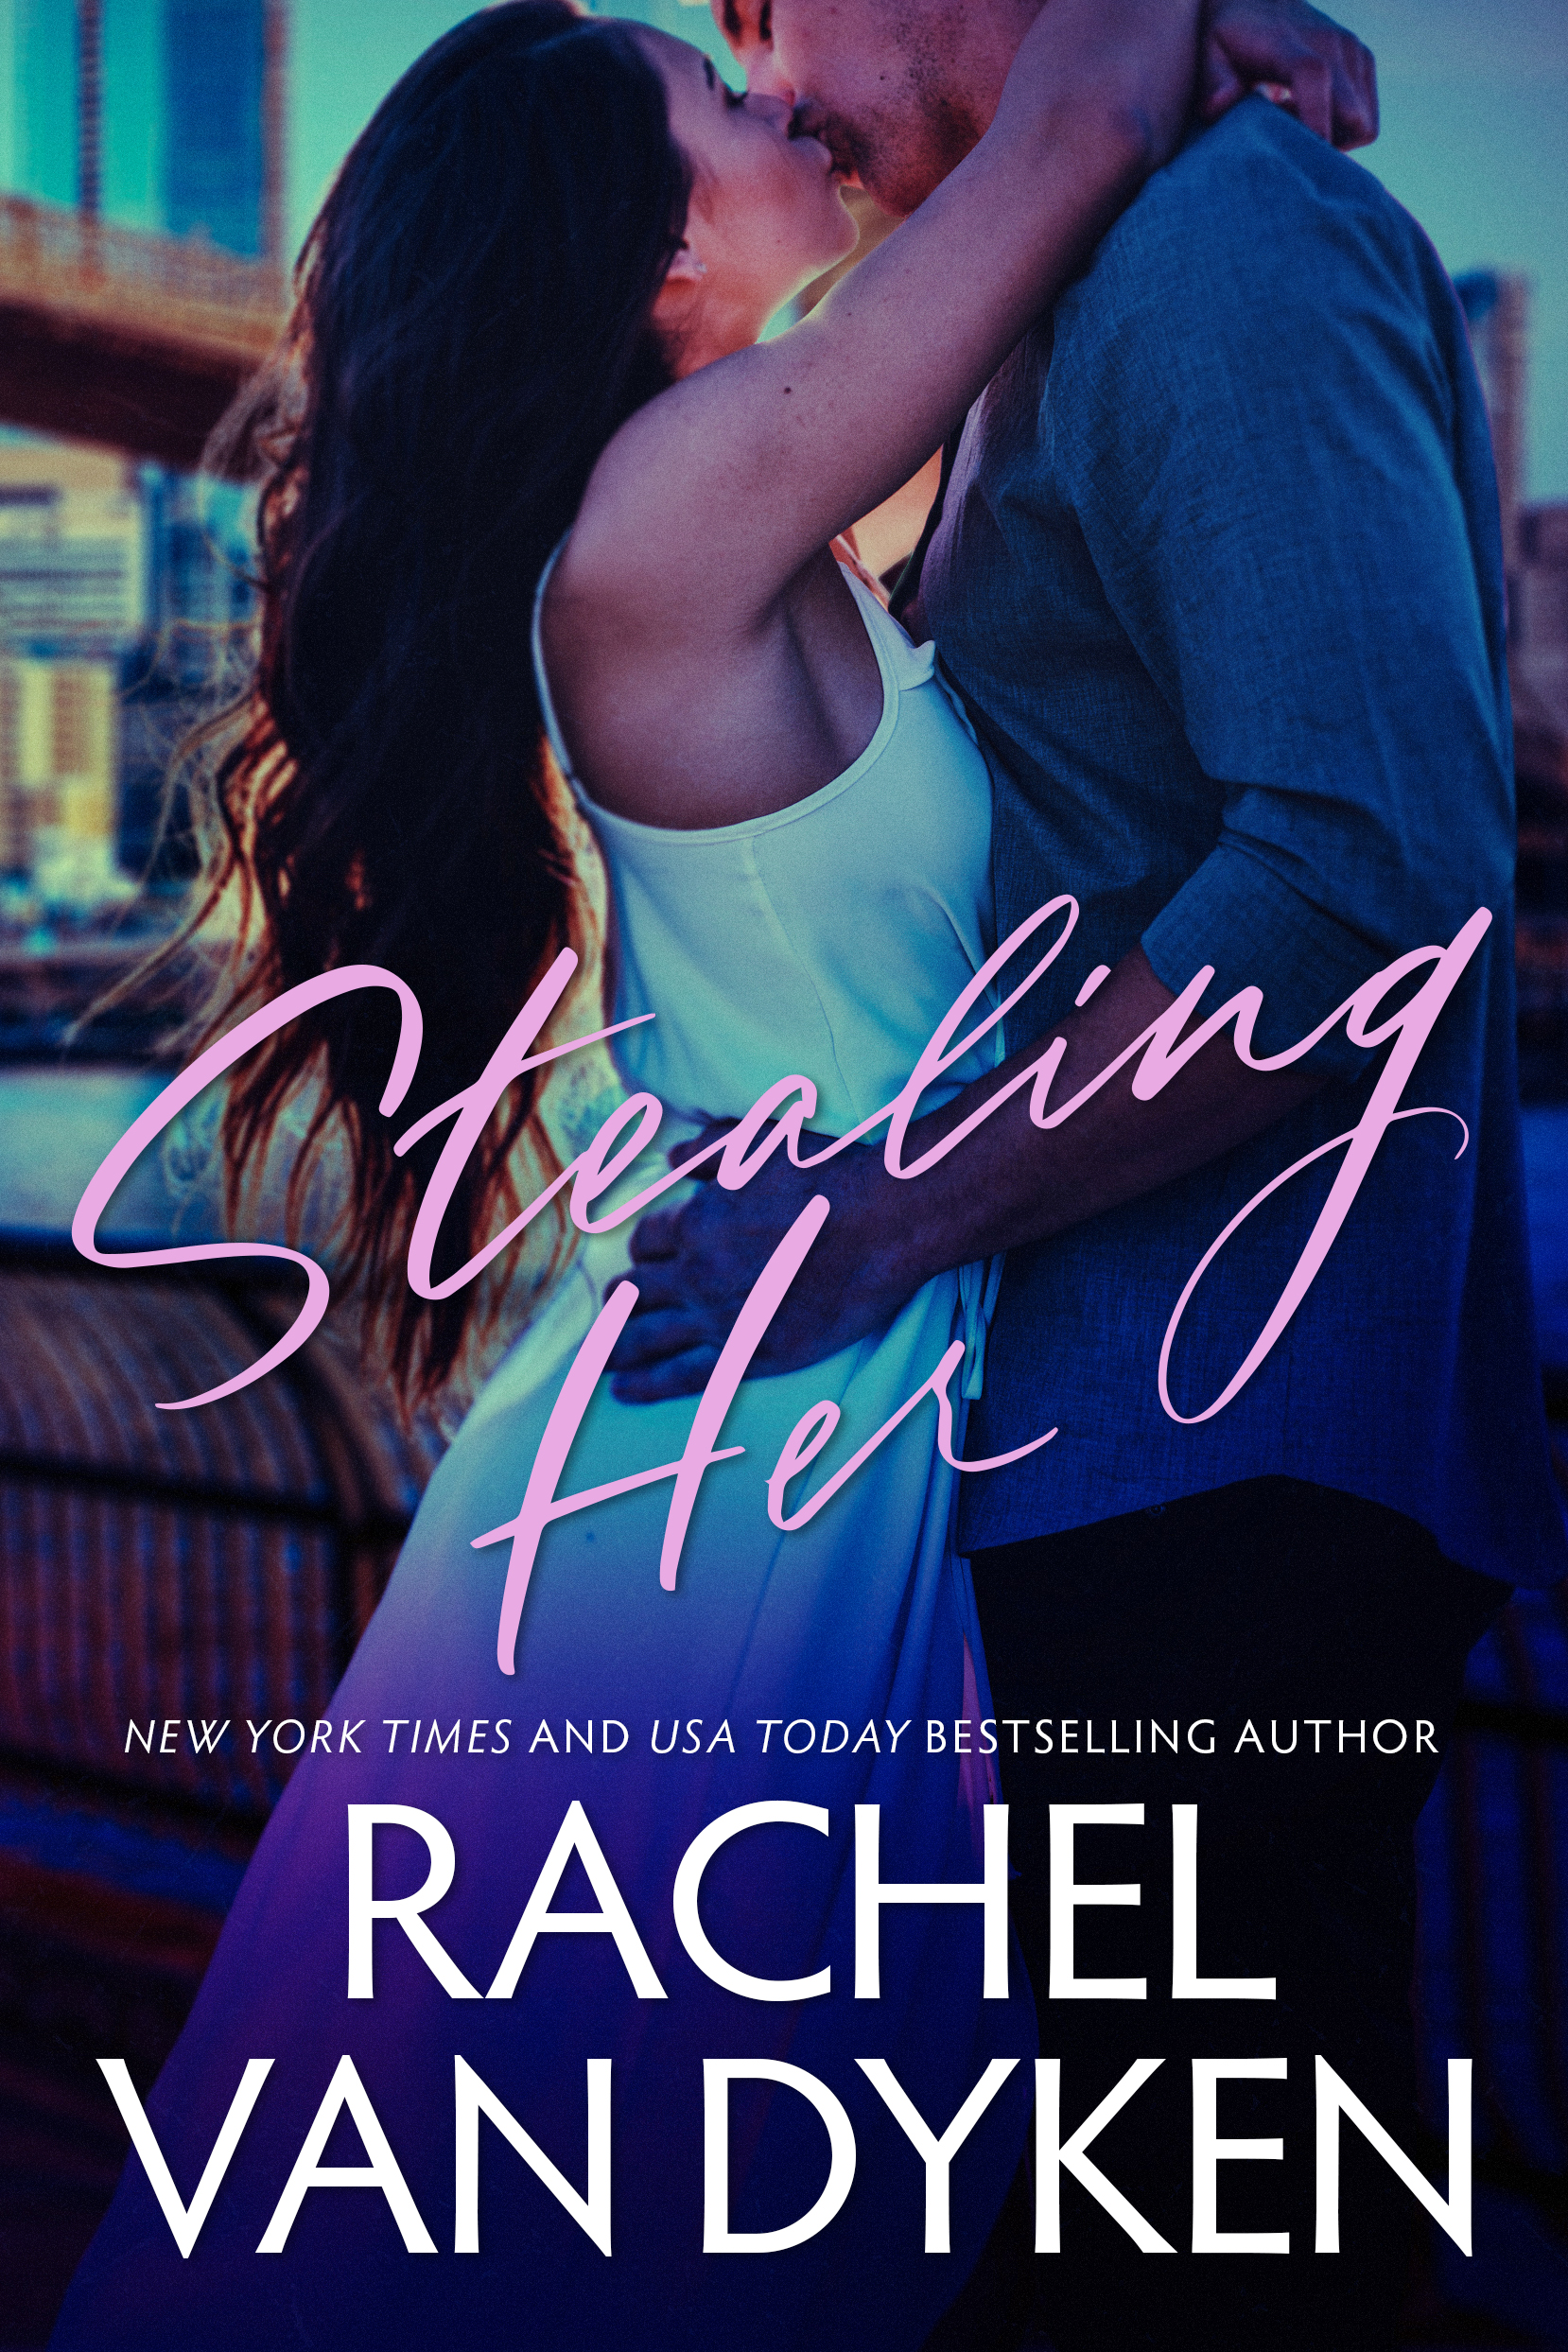 Copy of Stealing Her Cover.jpg